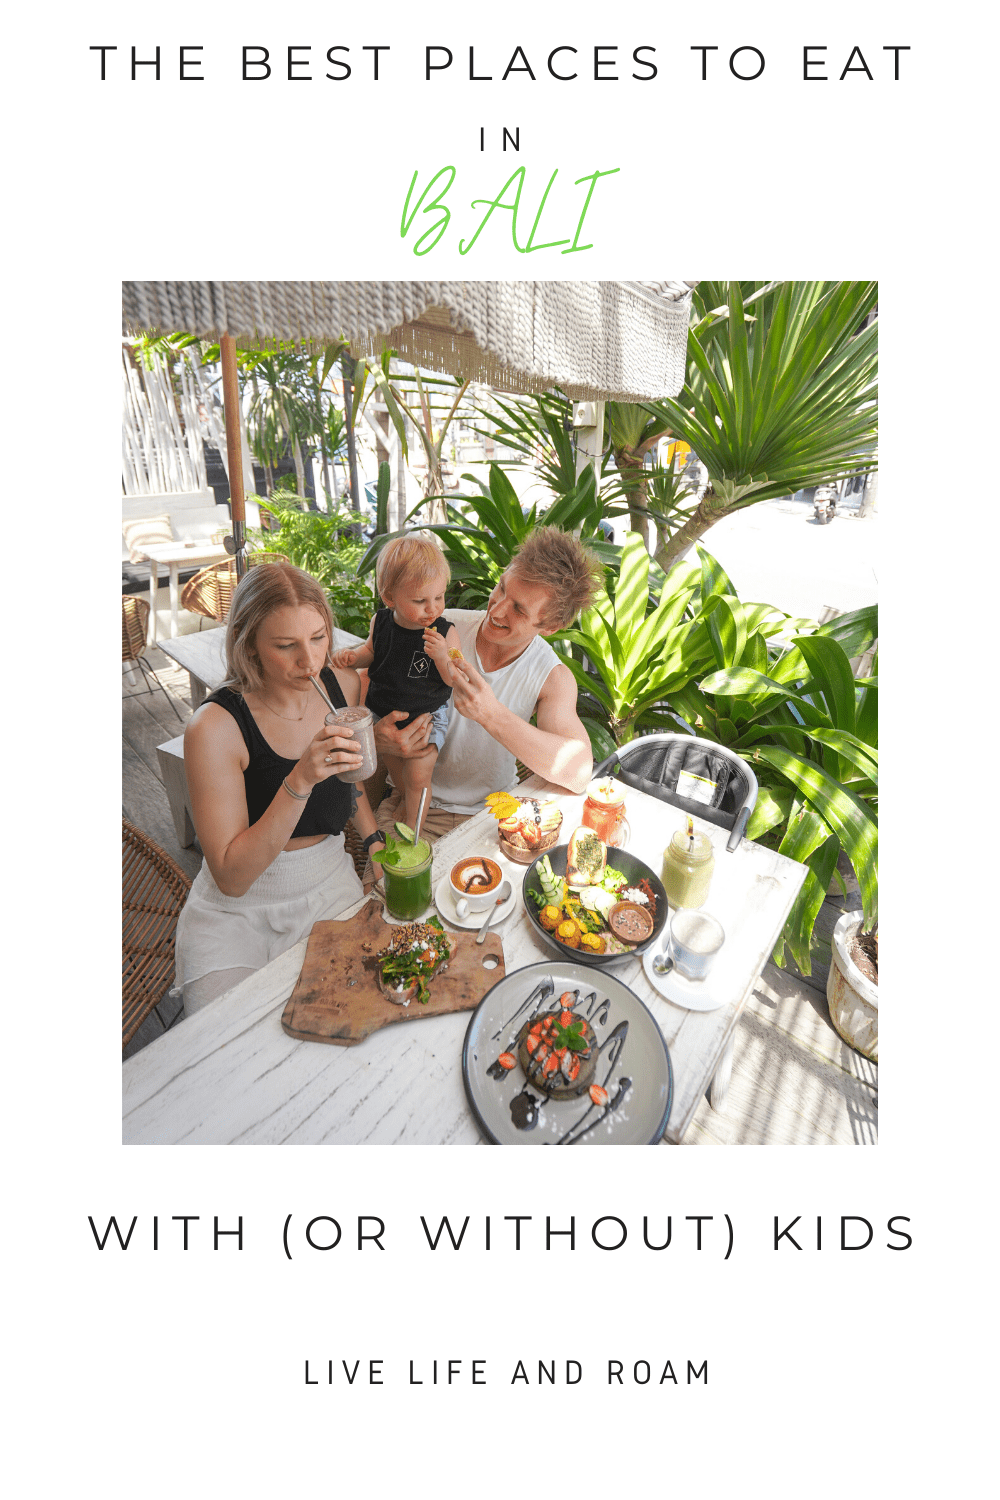 The Best Places to Eat in Bali with or without kids